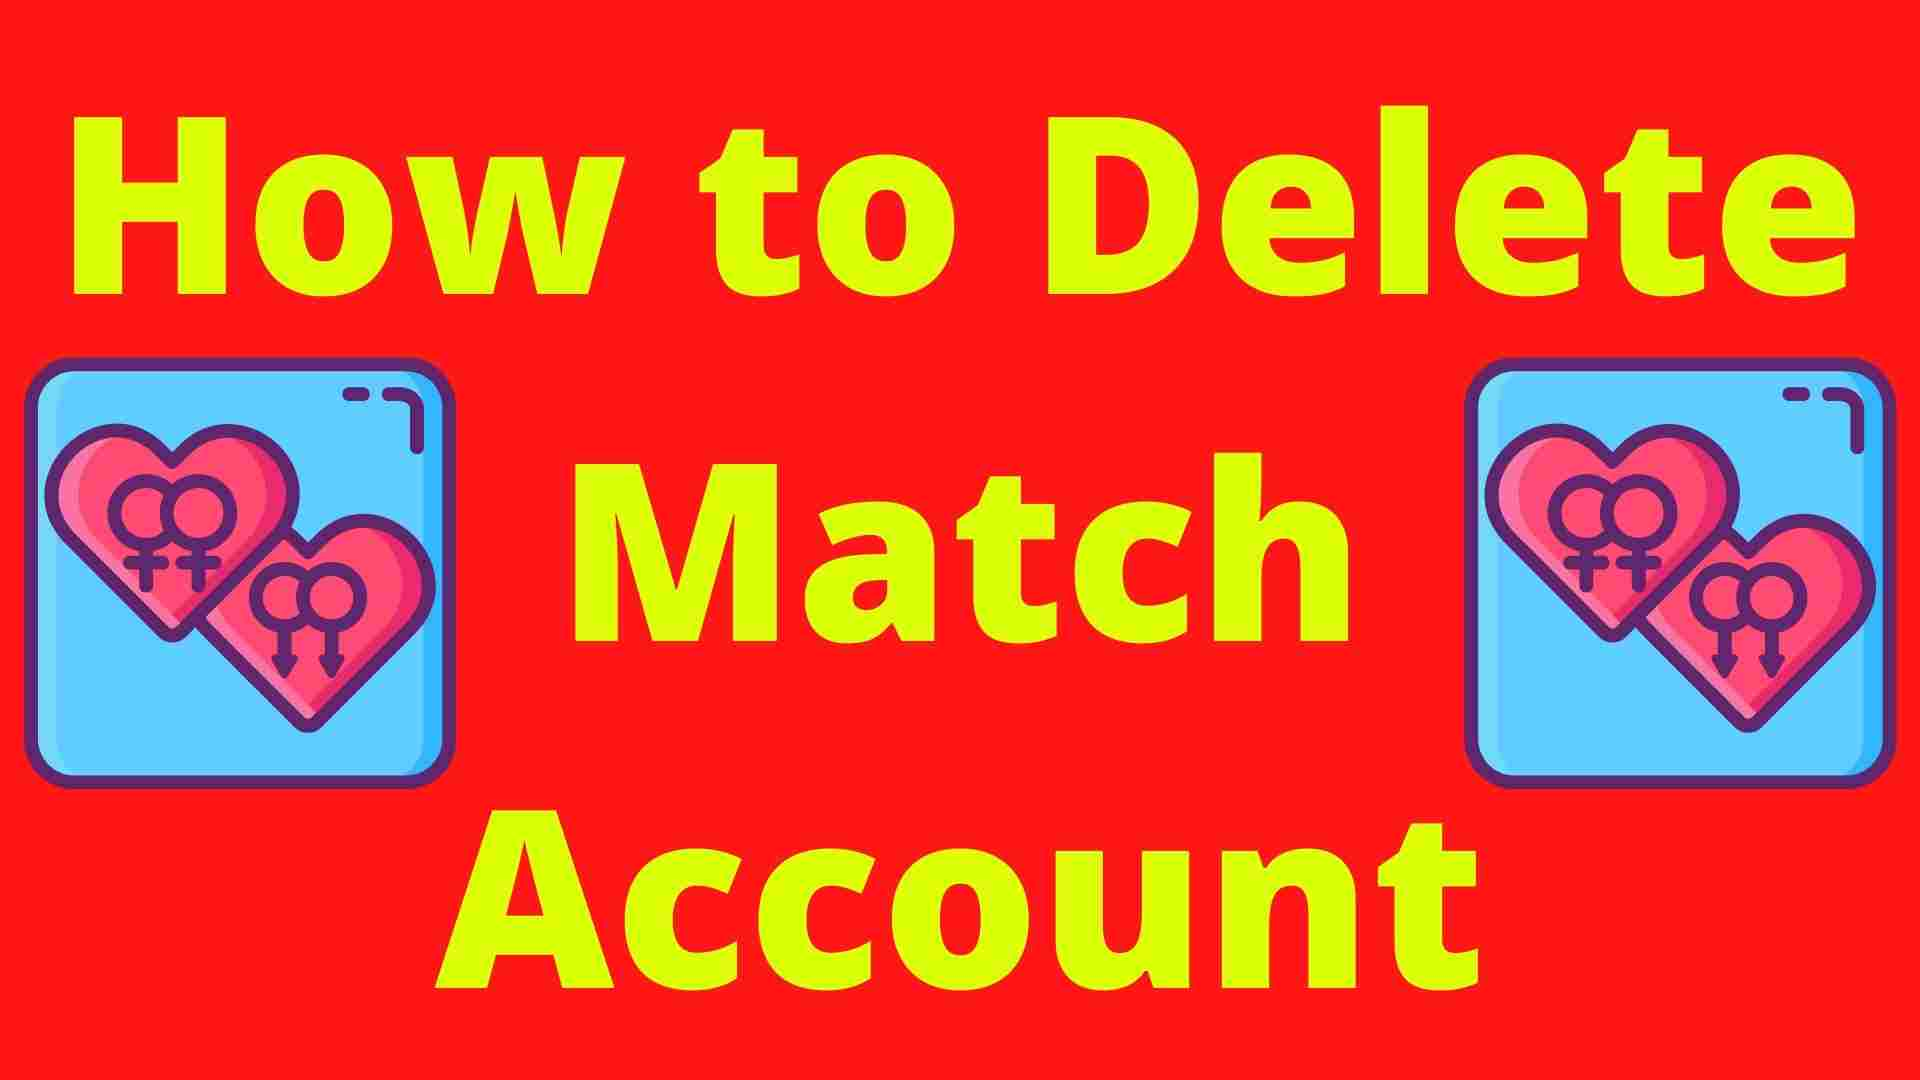 How to Delete Match Account